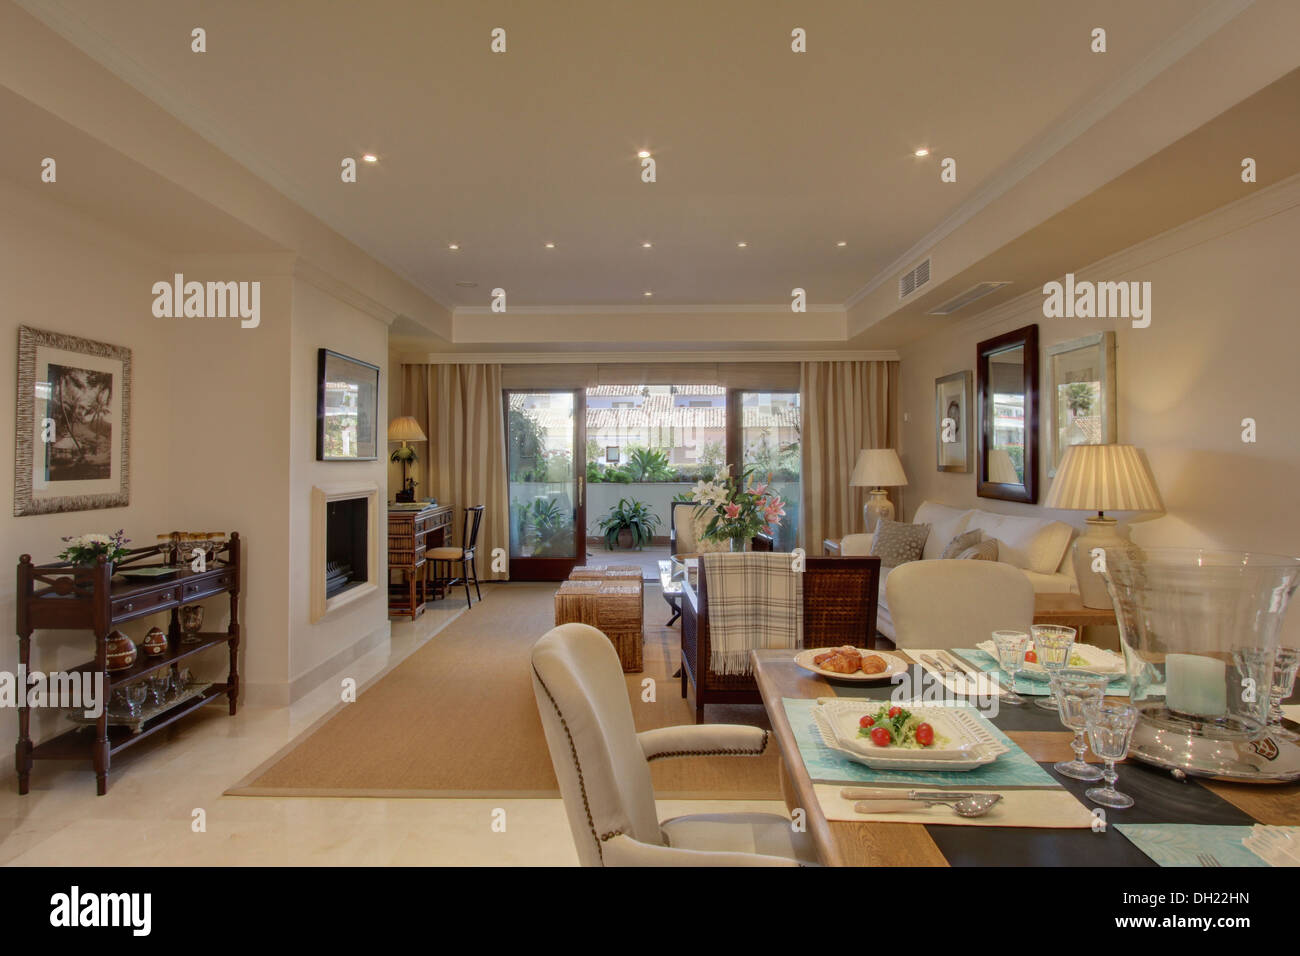 glass table sets for living room paint colors with cathedral ceilings set lunch in dining area of open plan modern spanish apartment doors to the balcony